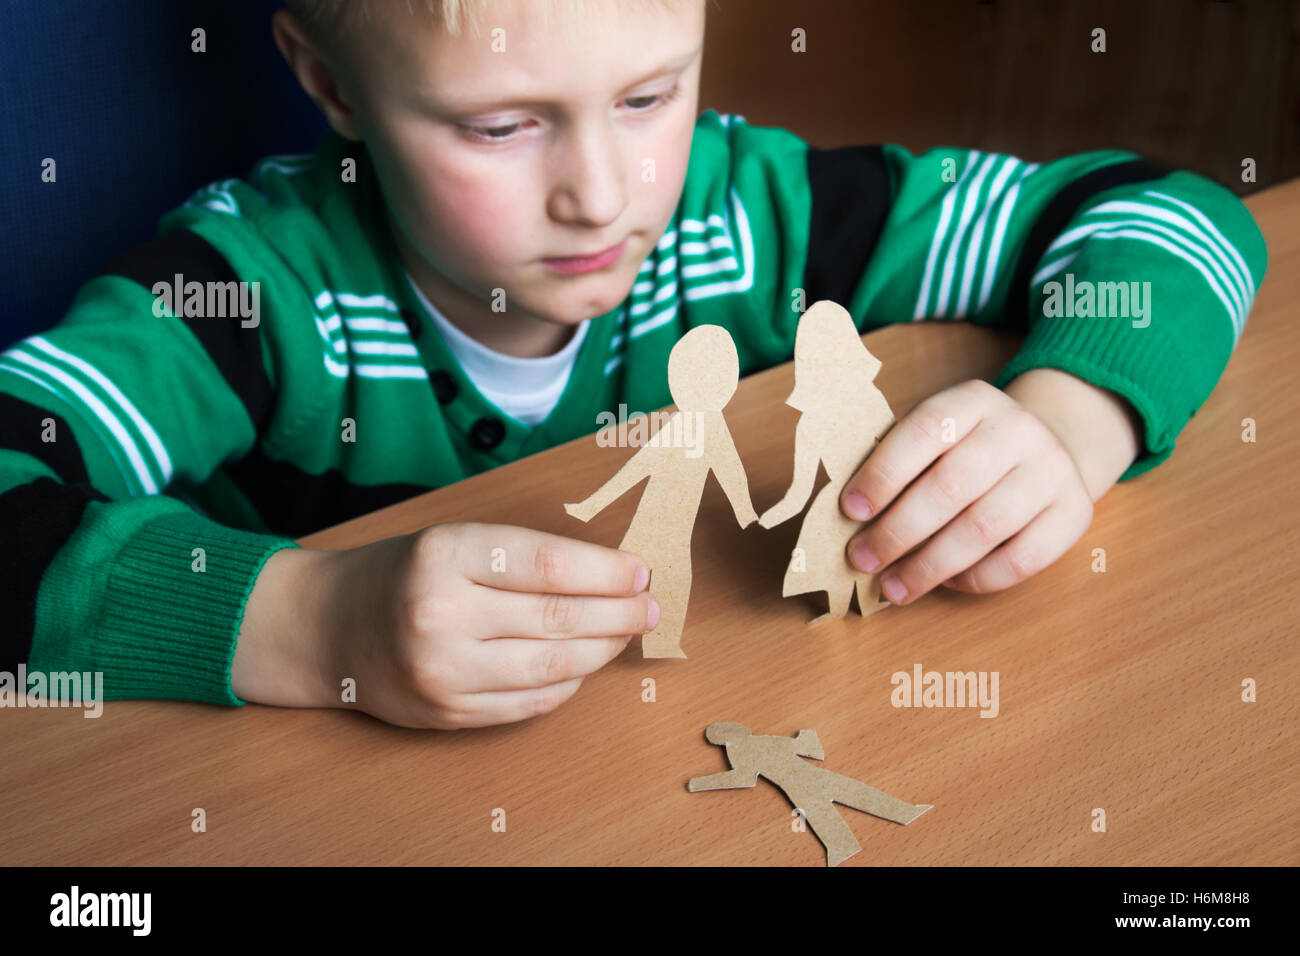 Confused child with broken paper family, custody, family problems, divorce, suffer concept - Stock Image